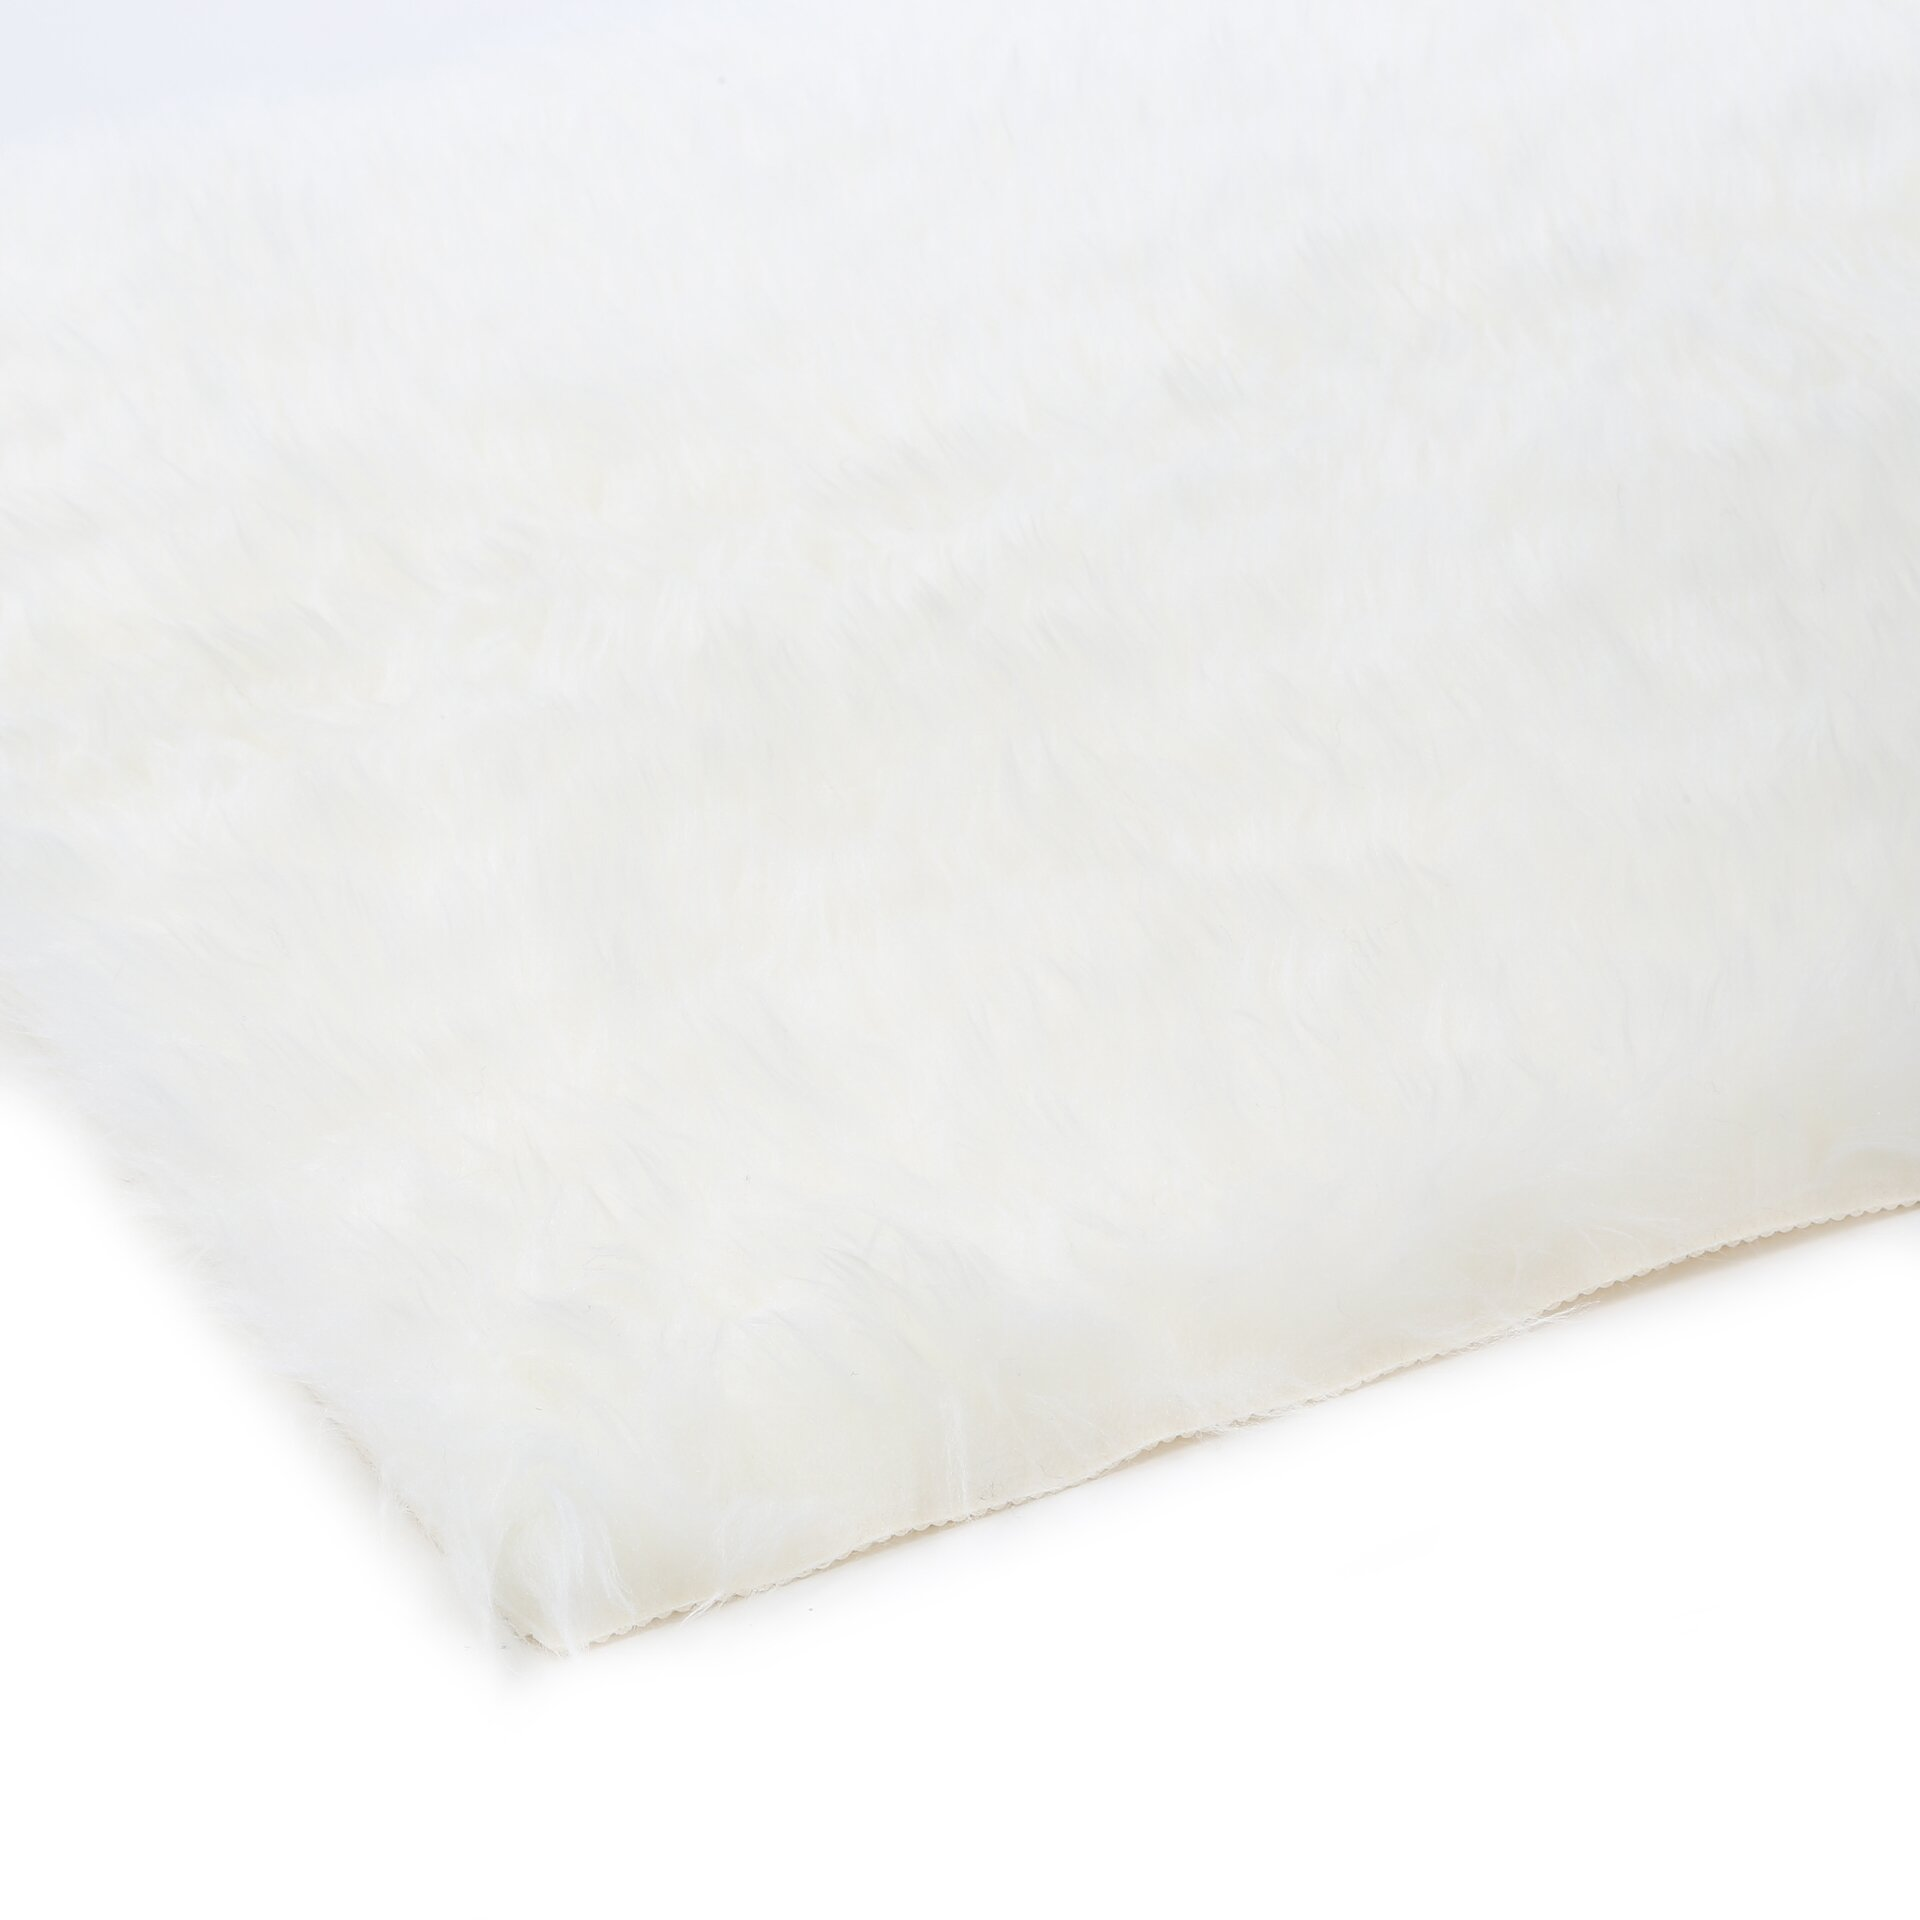 Walk On Me Polar Bear Faux Fur Area Rug & Reviews